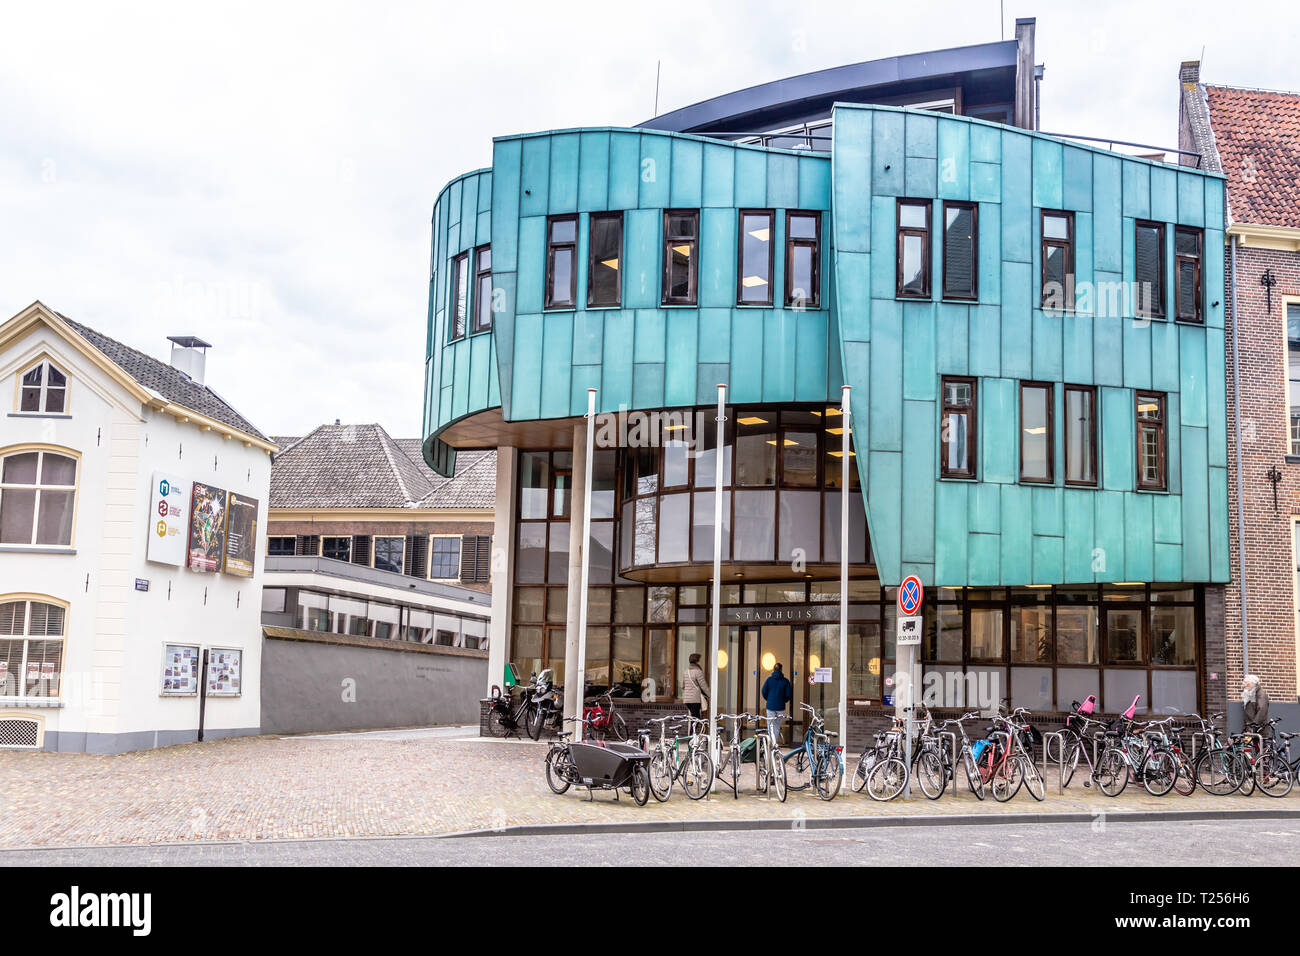 Zutphen, the Netherlands - March 28, 2019: Modern city hall with copper coating in the ancient city center of Zutphen in the Netherlands. Stock Photo